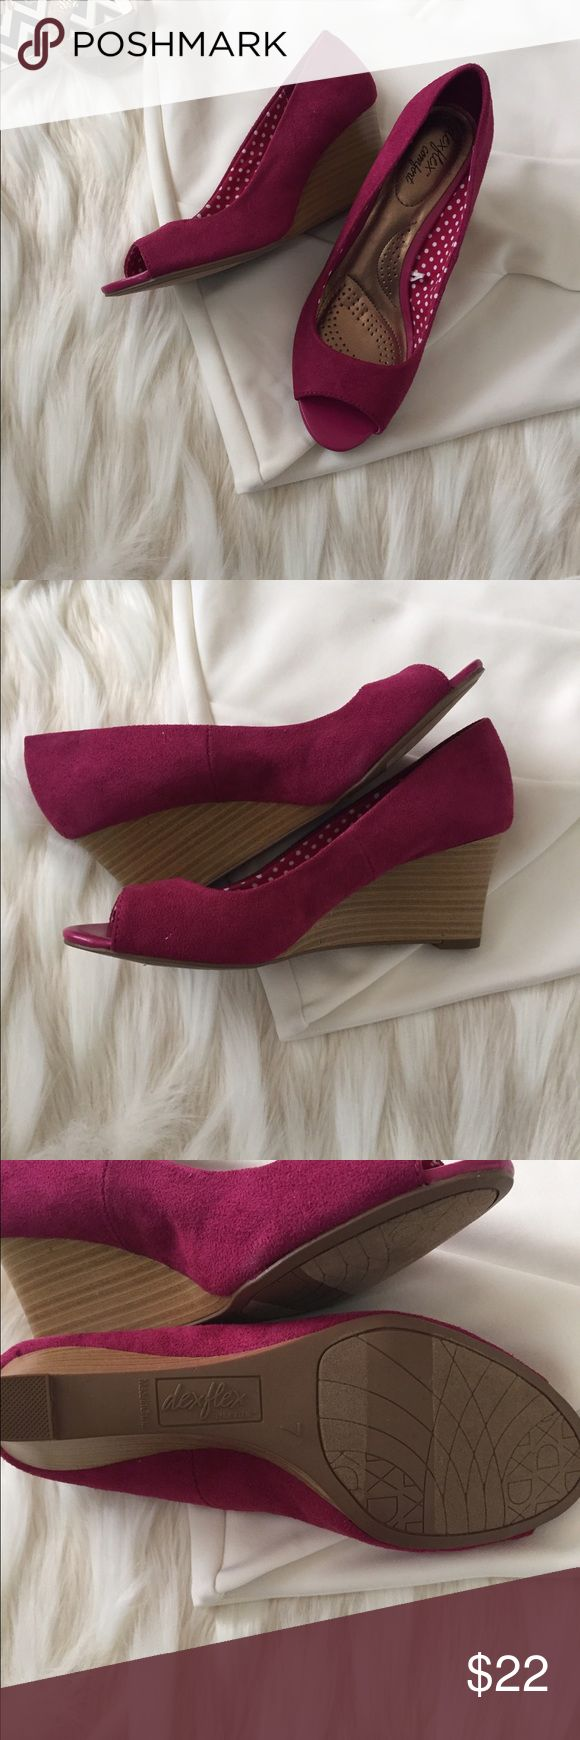 """NWOT magenta faux suede wedges Cute magenta faux suede wedges from Dexflex have an open toe and cushion interior for extra comfort and support. Size 7. Never worn, no box. 3"""" wedge heel. Shoes Wedges"""